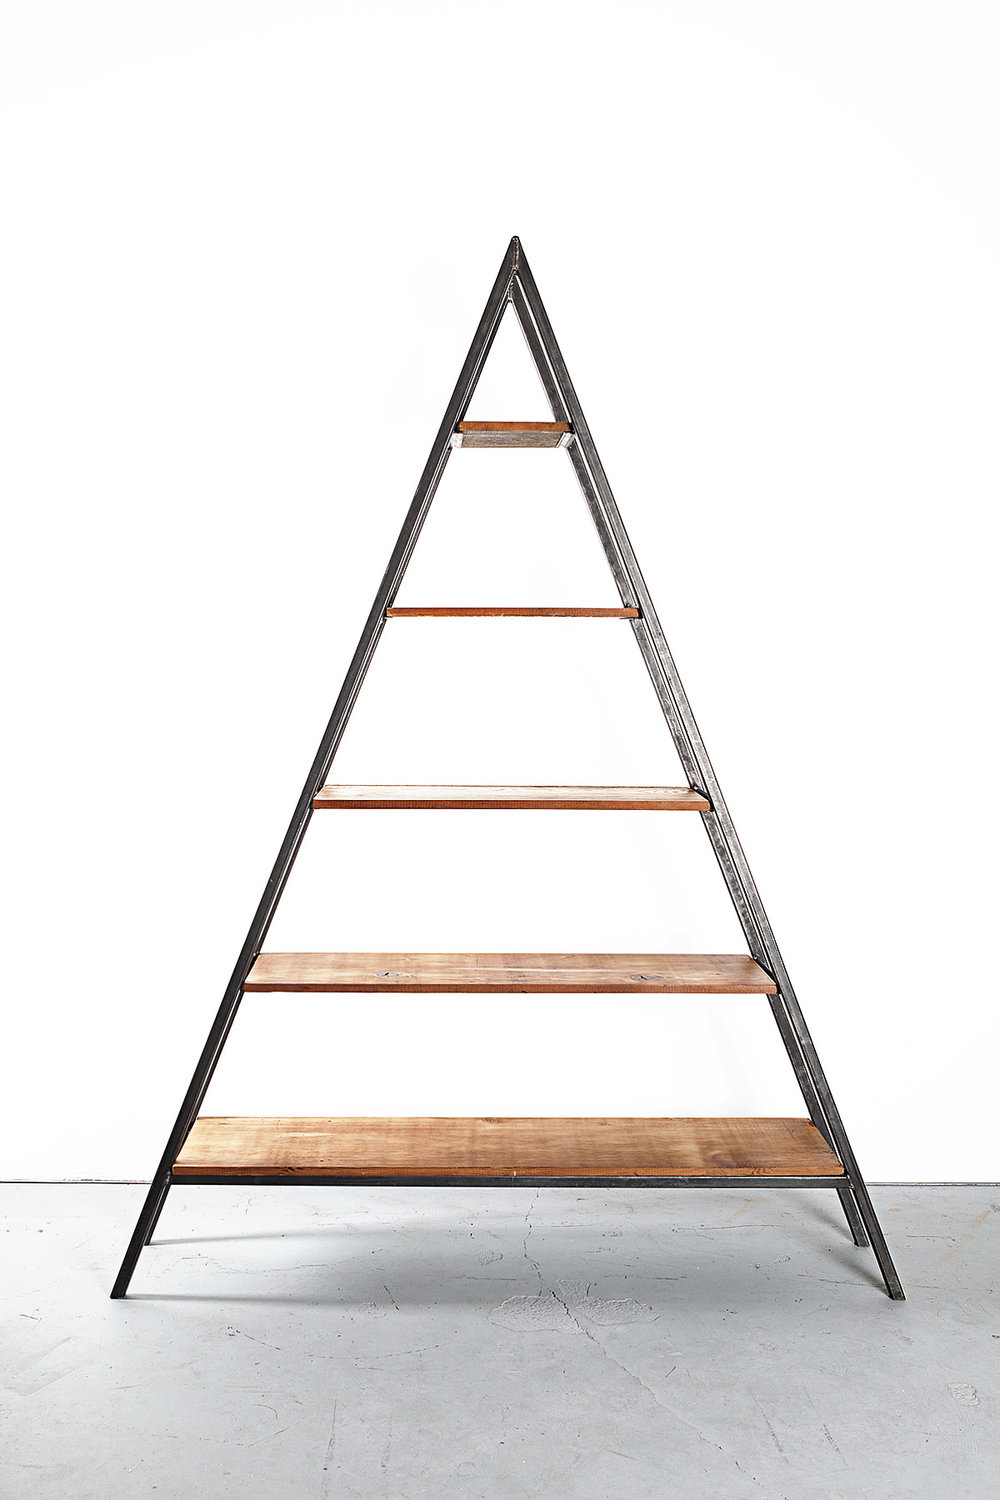 Custom Reclaimed Fir Triangle Shelving